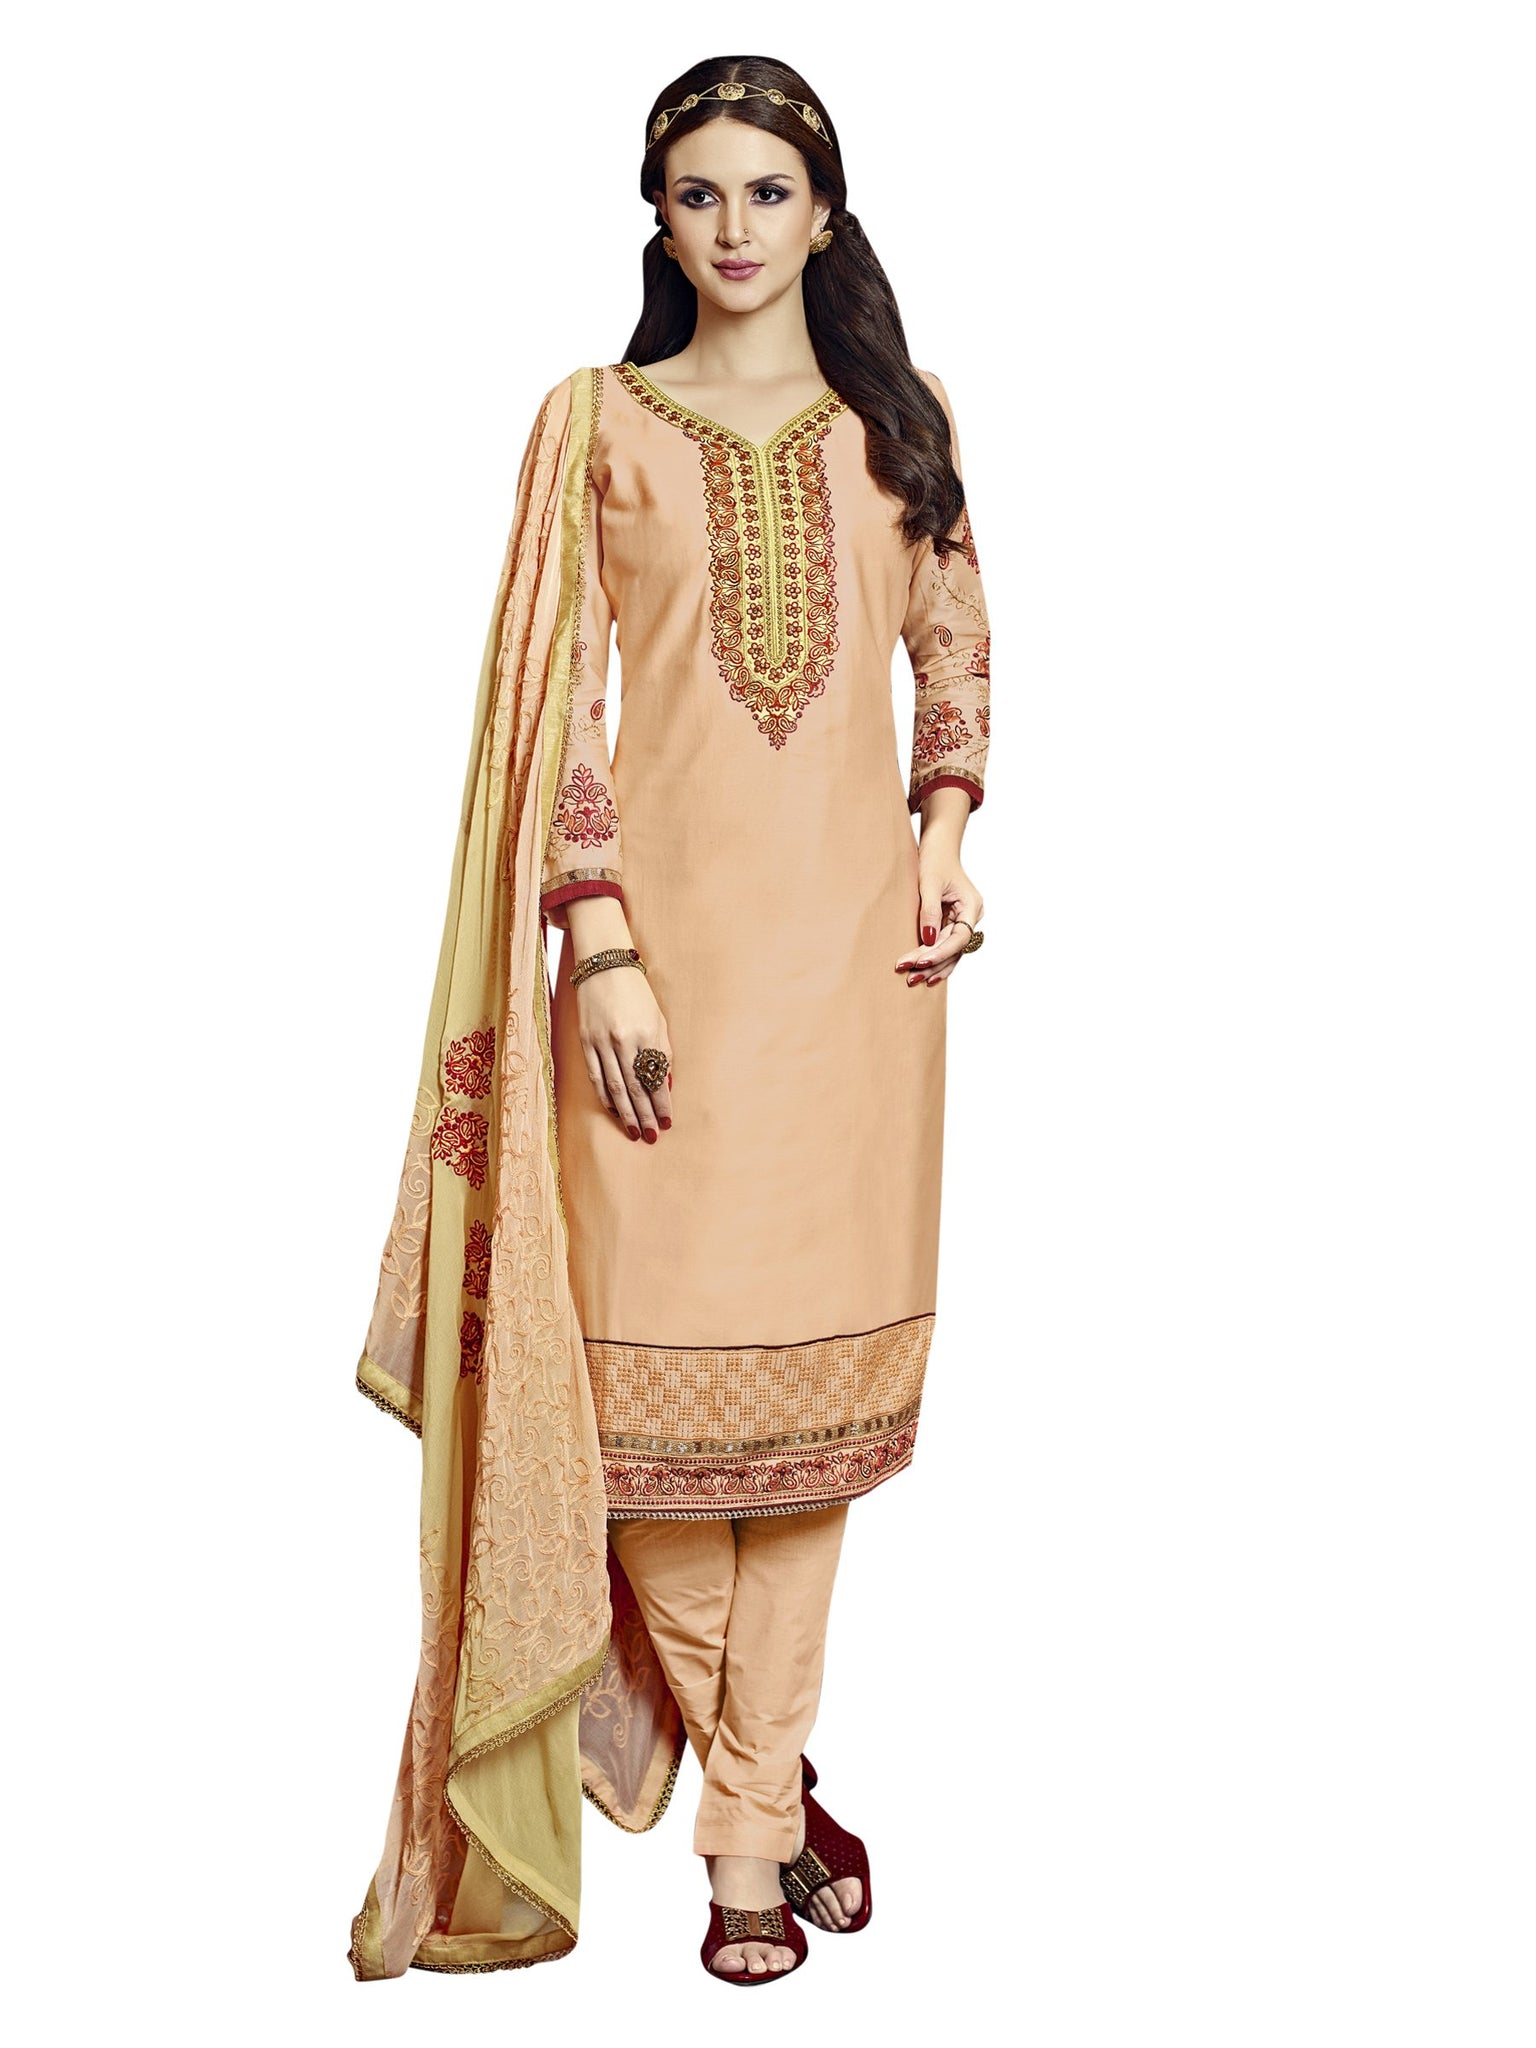 Styleez Salwar Kameez 187 Traditional Contrast Resham Work With Jari & Ready Lace, Crystal